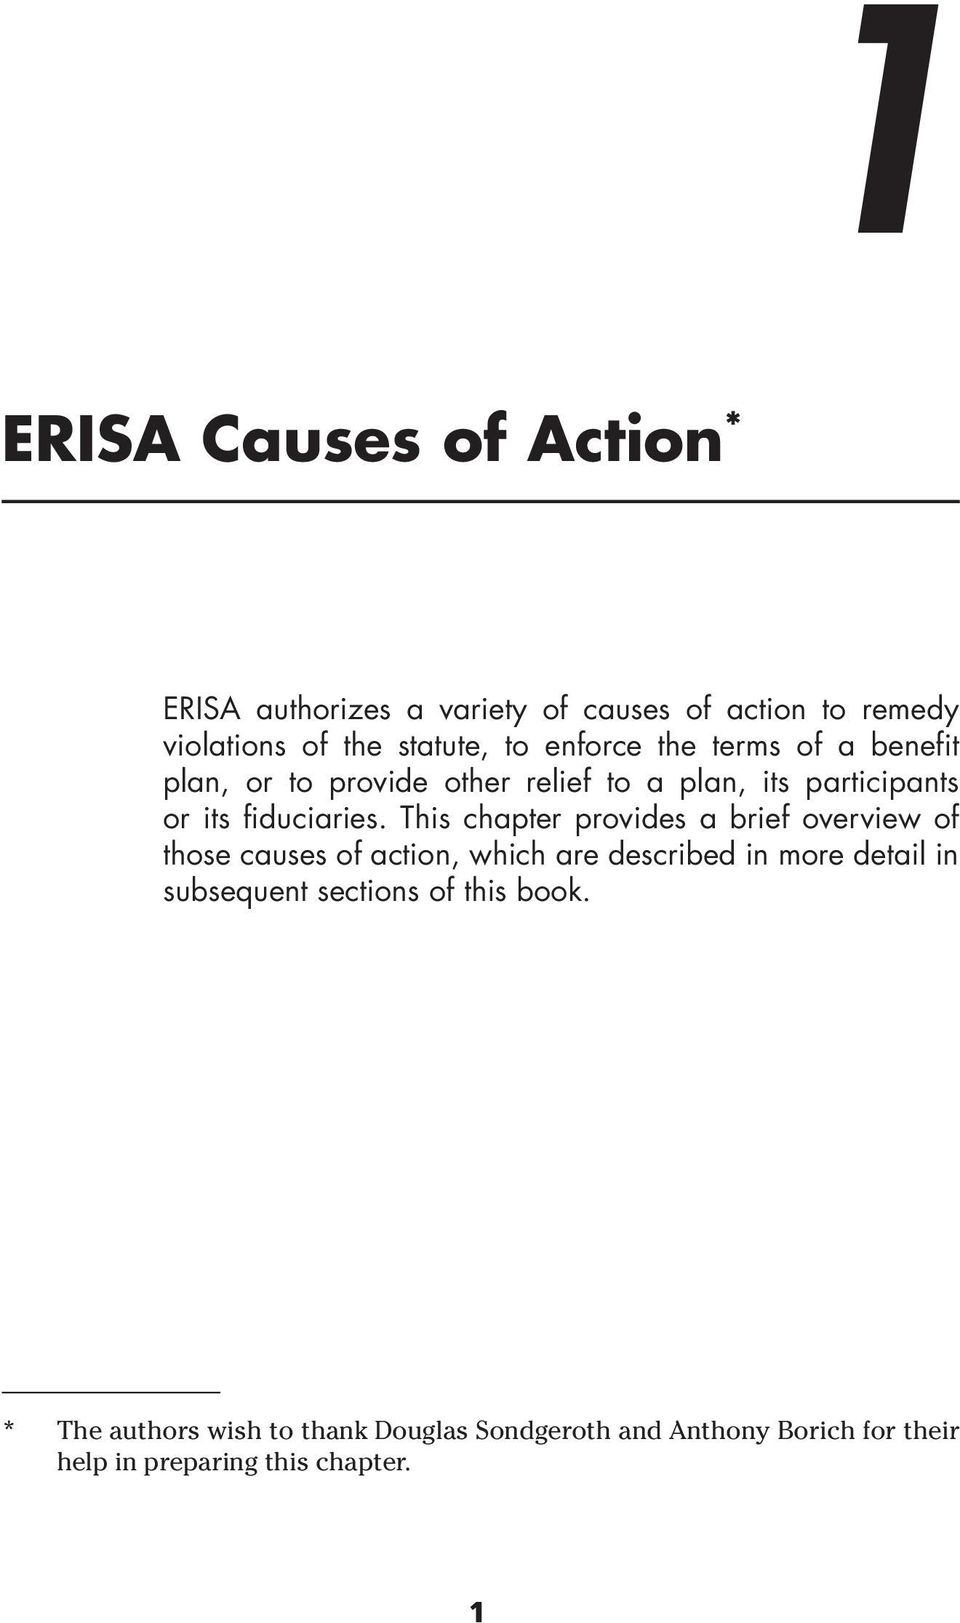 This chapter provides a brief overview of those causes of action, which are described in more detail in subsequent